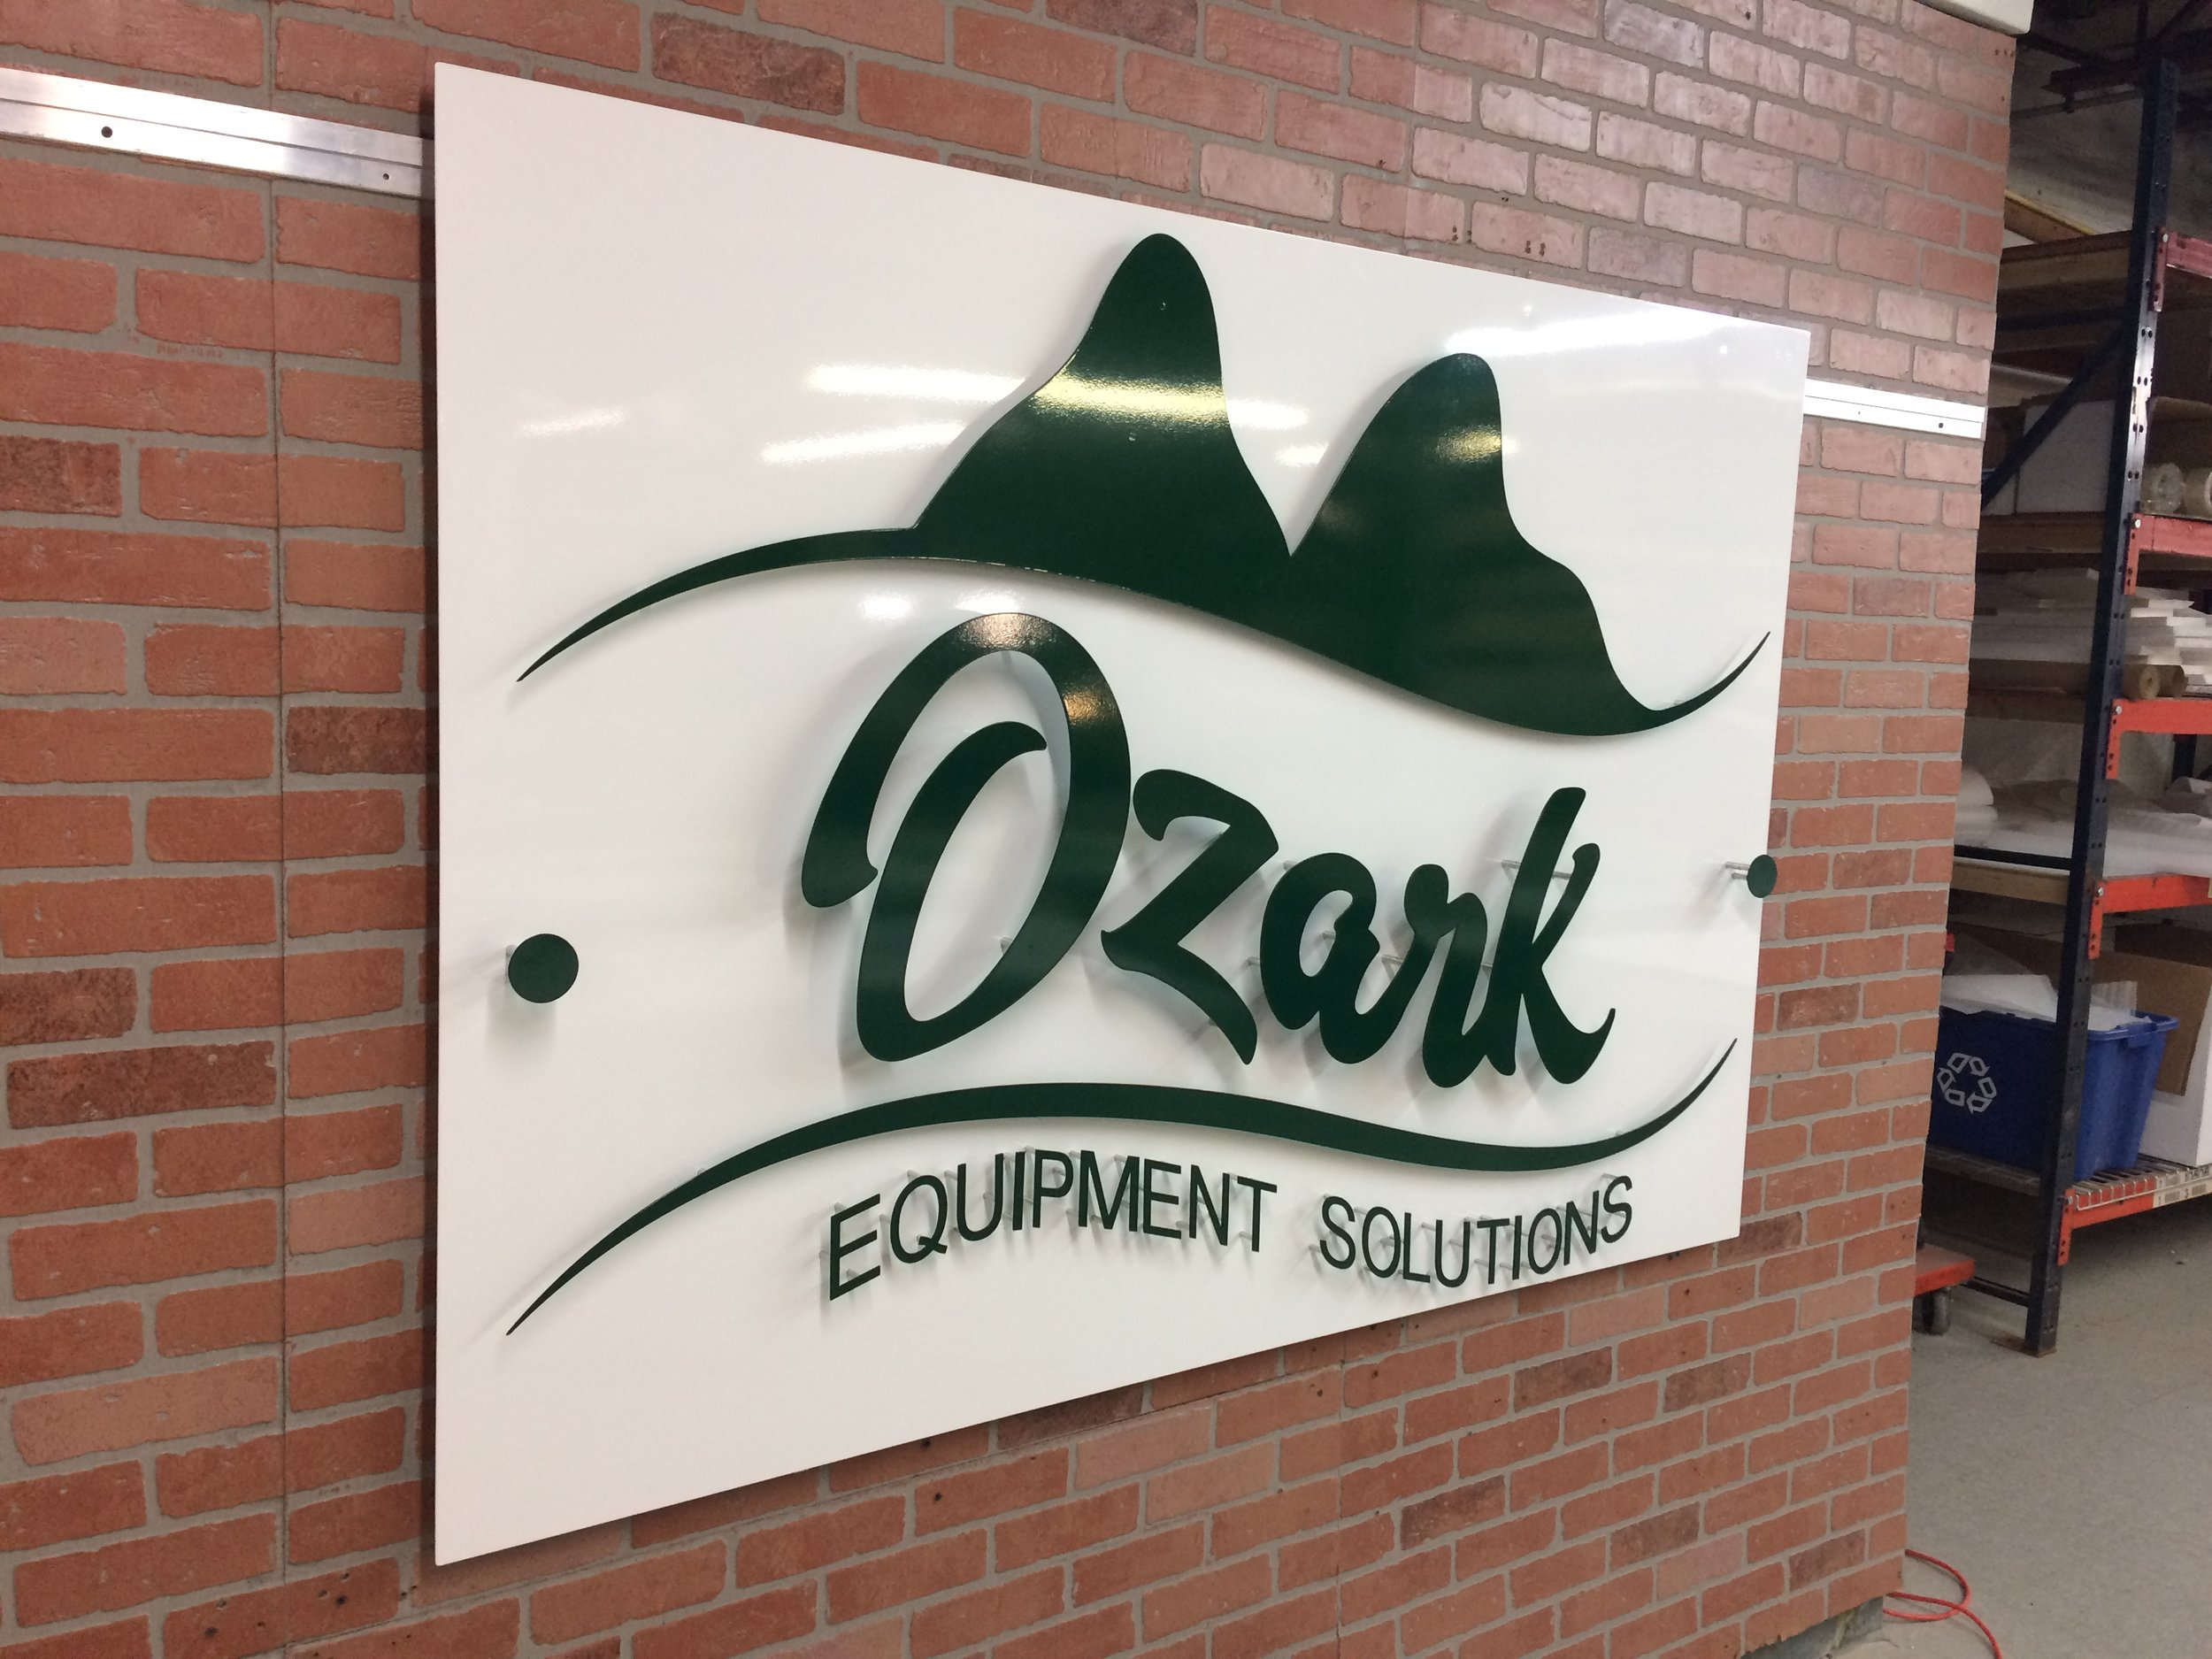 Custom Metal Sign-Ozark Equipment Solutions-left.JPG